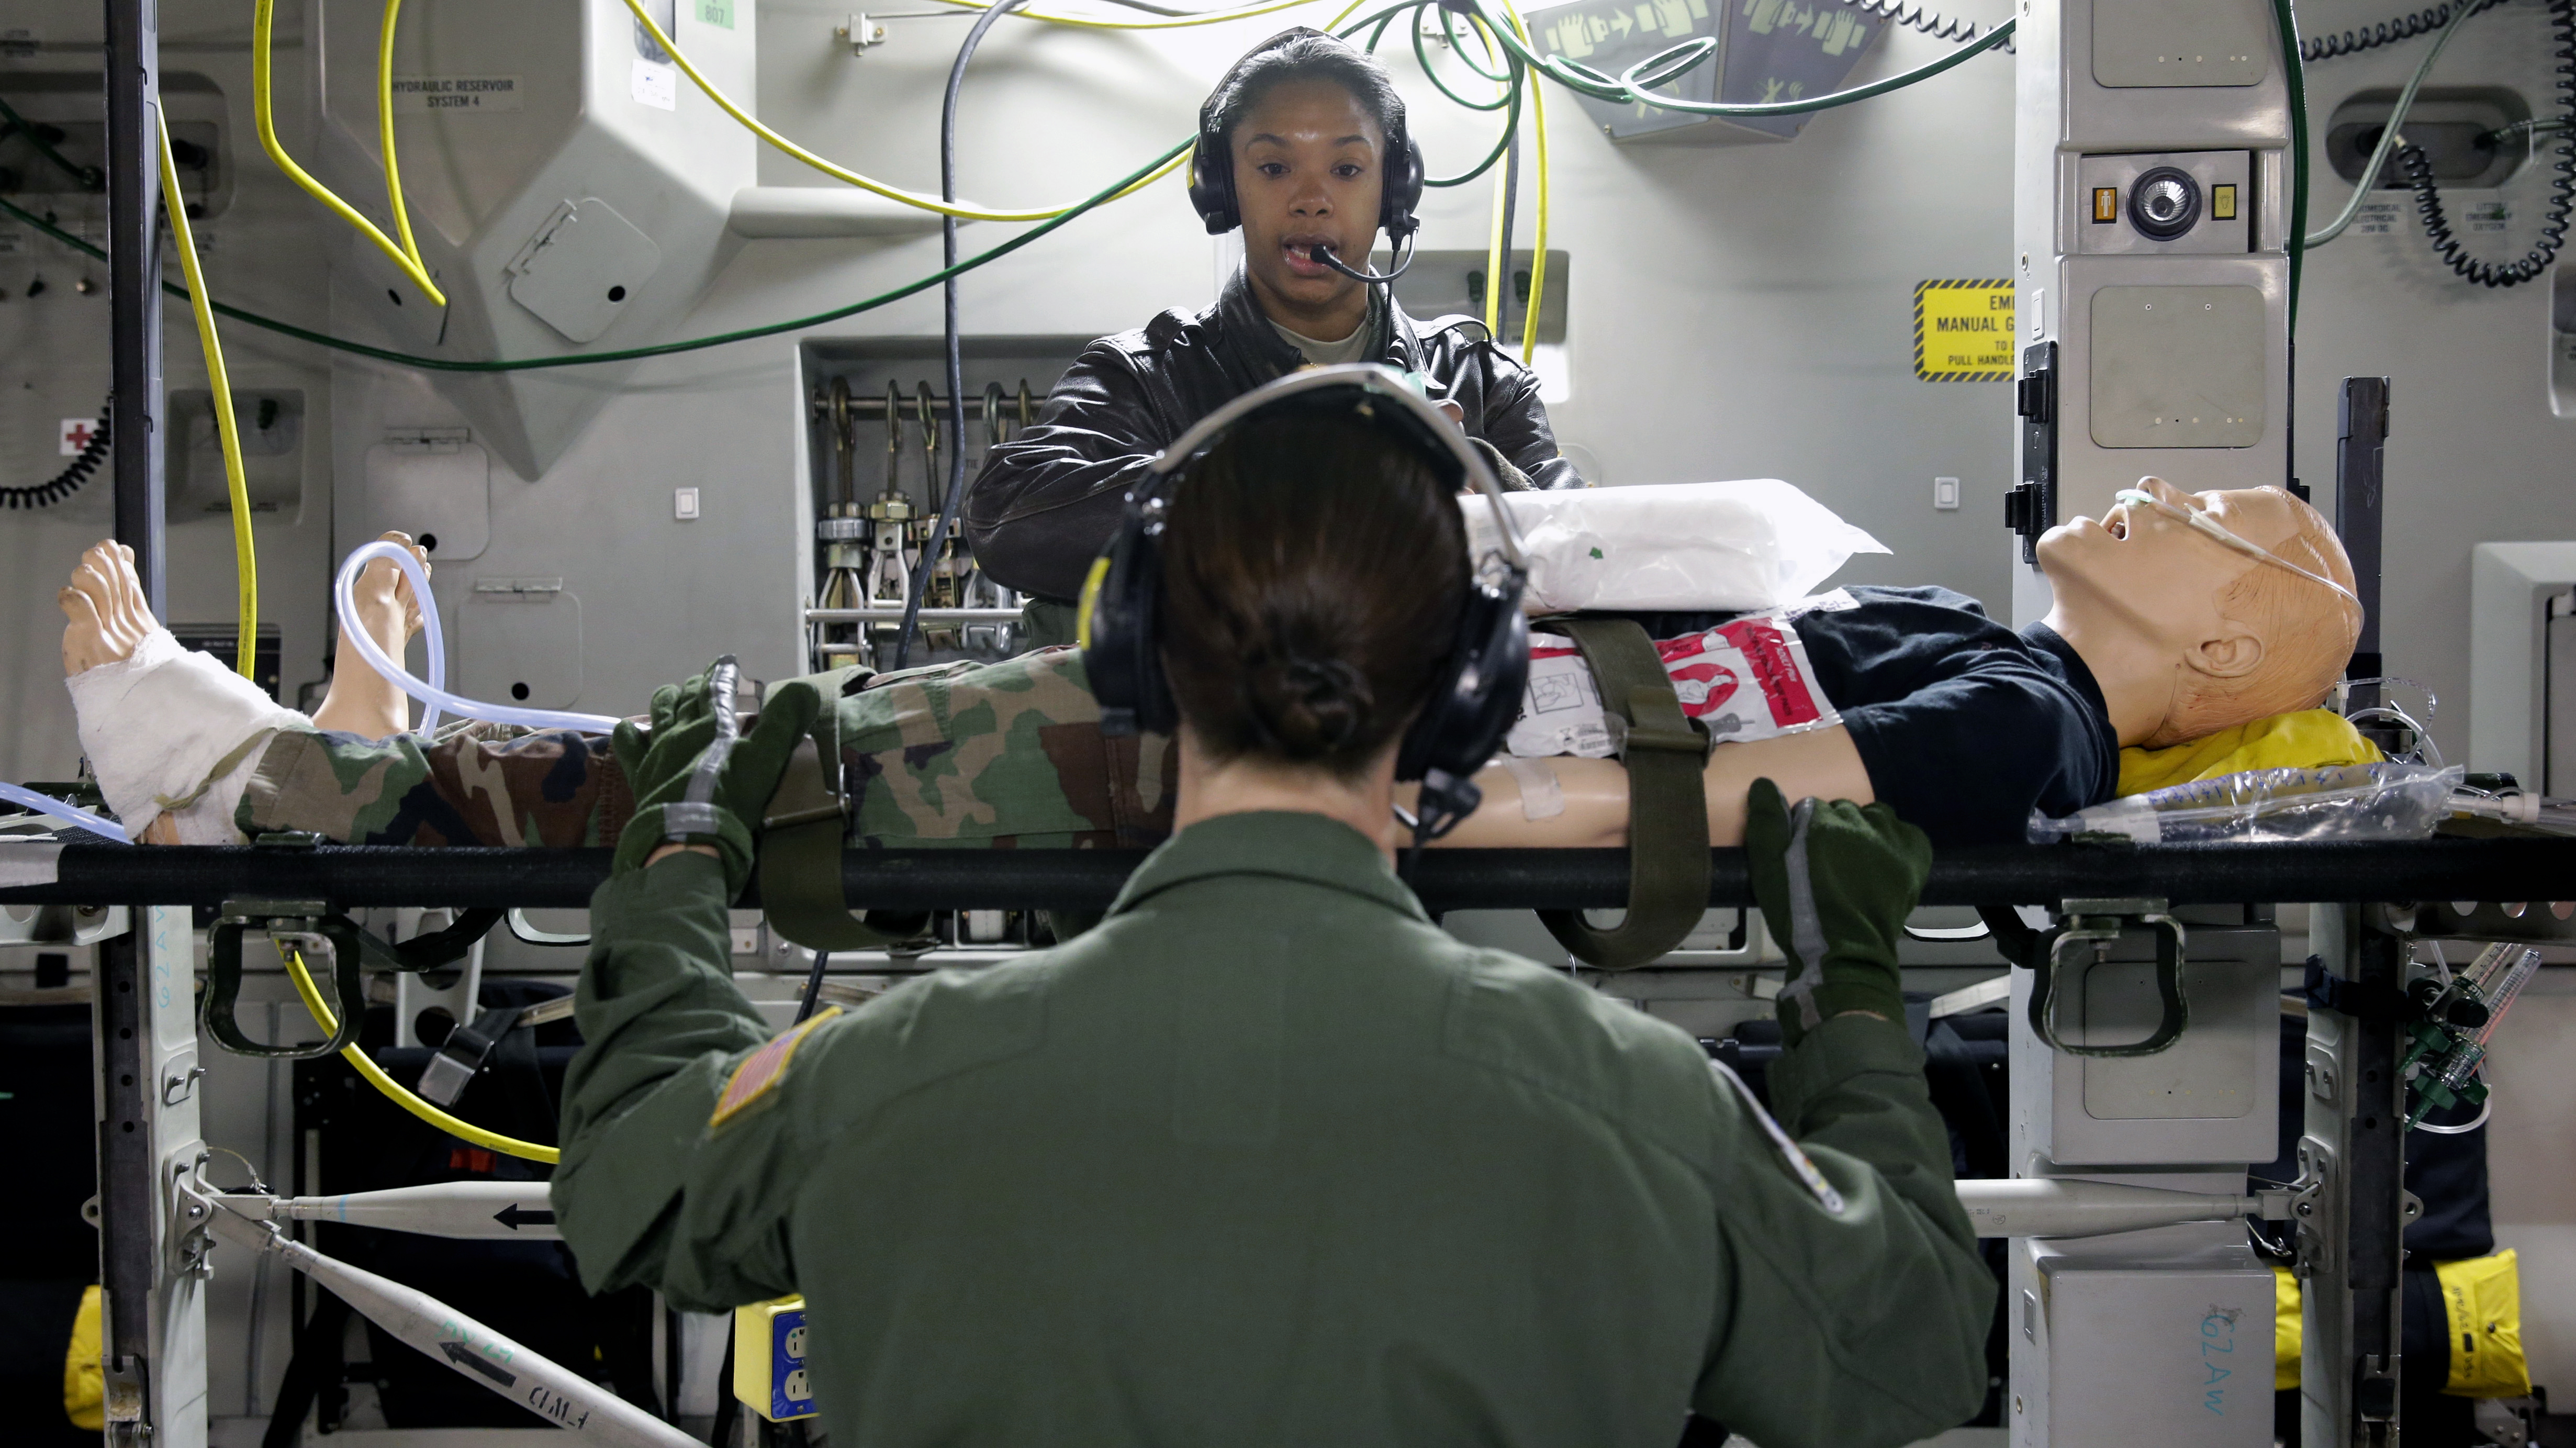 Two US Air Force soldiers practicing medical training on a mannequin.